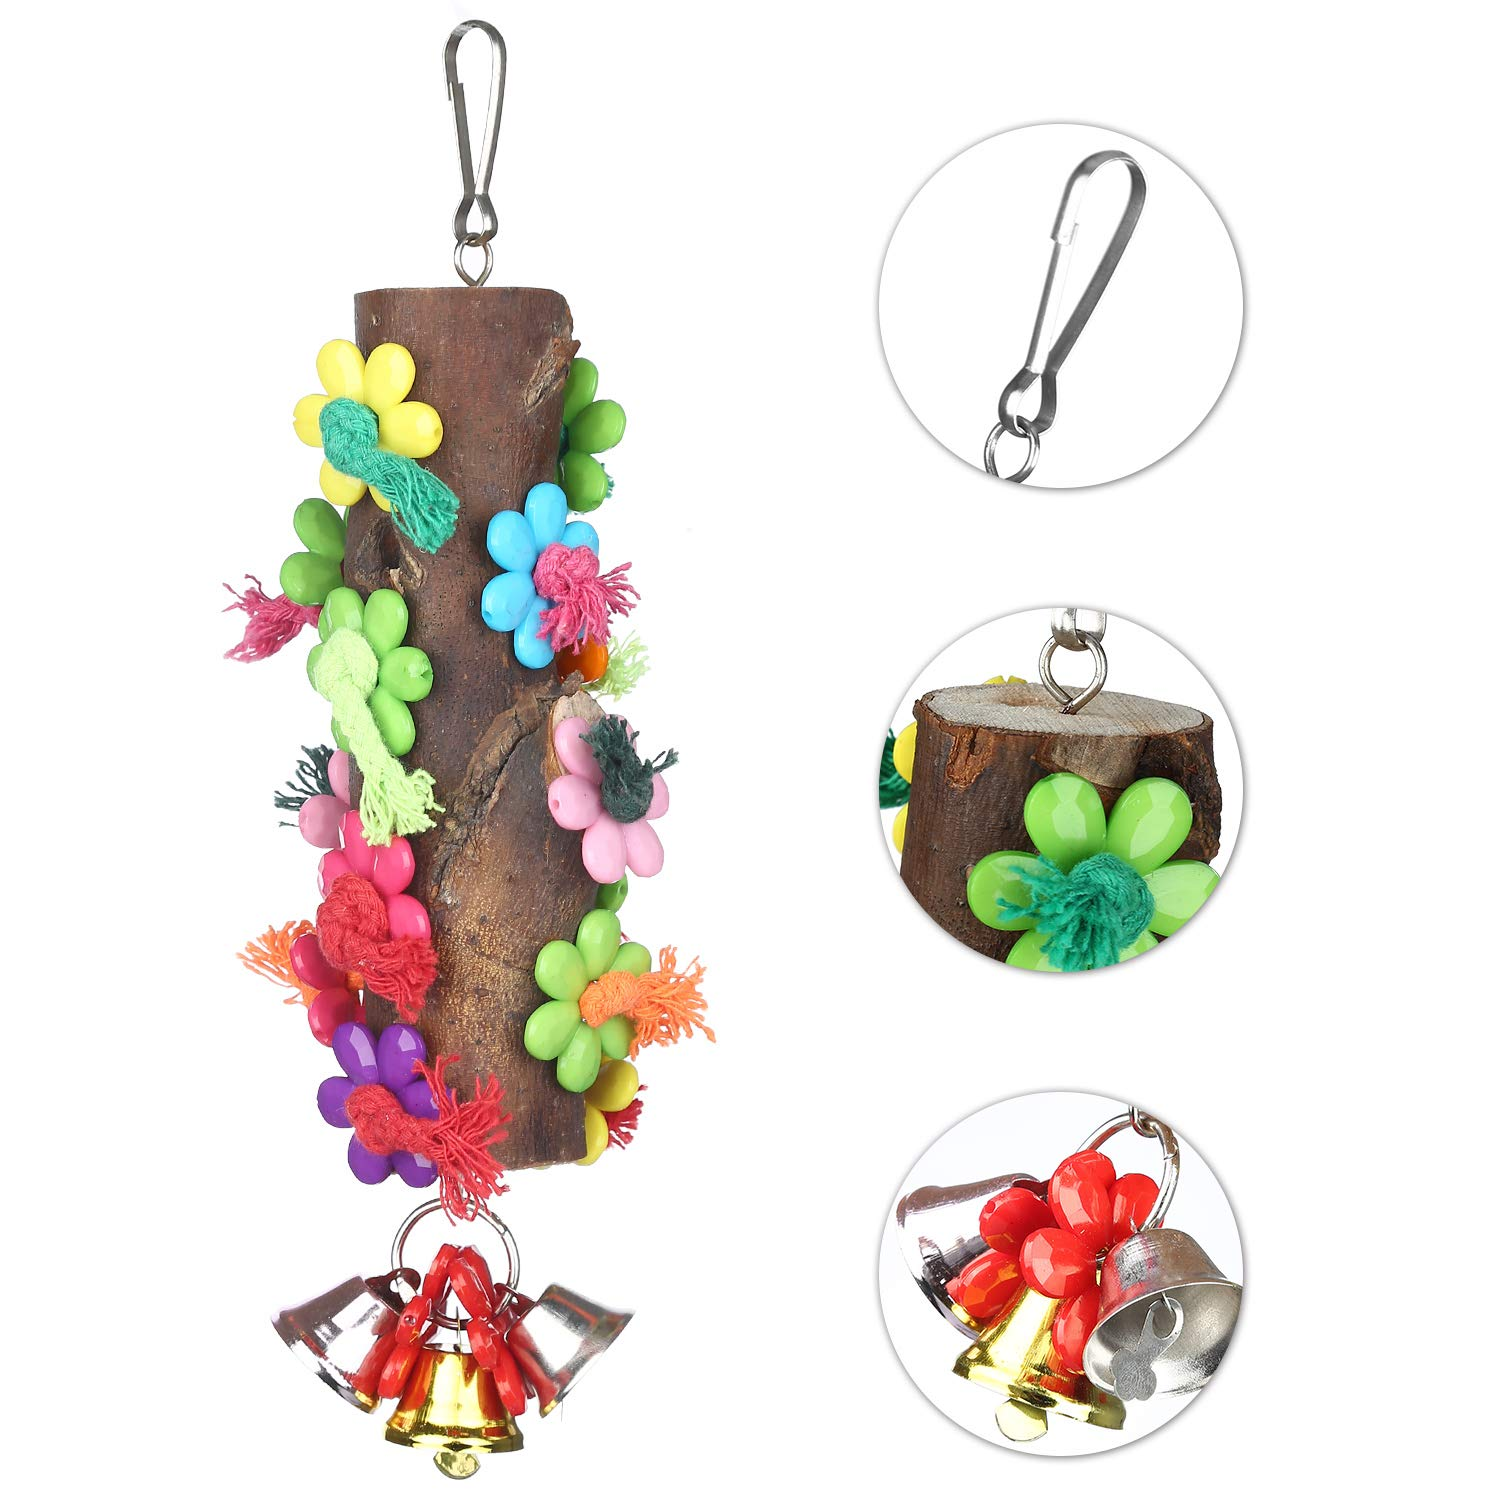 Wooden Bird Chew Toy, Parrot Hanging Toy, Bird Cage Toy with Acrylic Flowers, Cotton Knots and Bell for Parrots, Small Parakeets, African Grey, Son Conure, Cockatoo and Macaw, Cockatiel, Love Birds